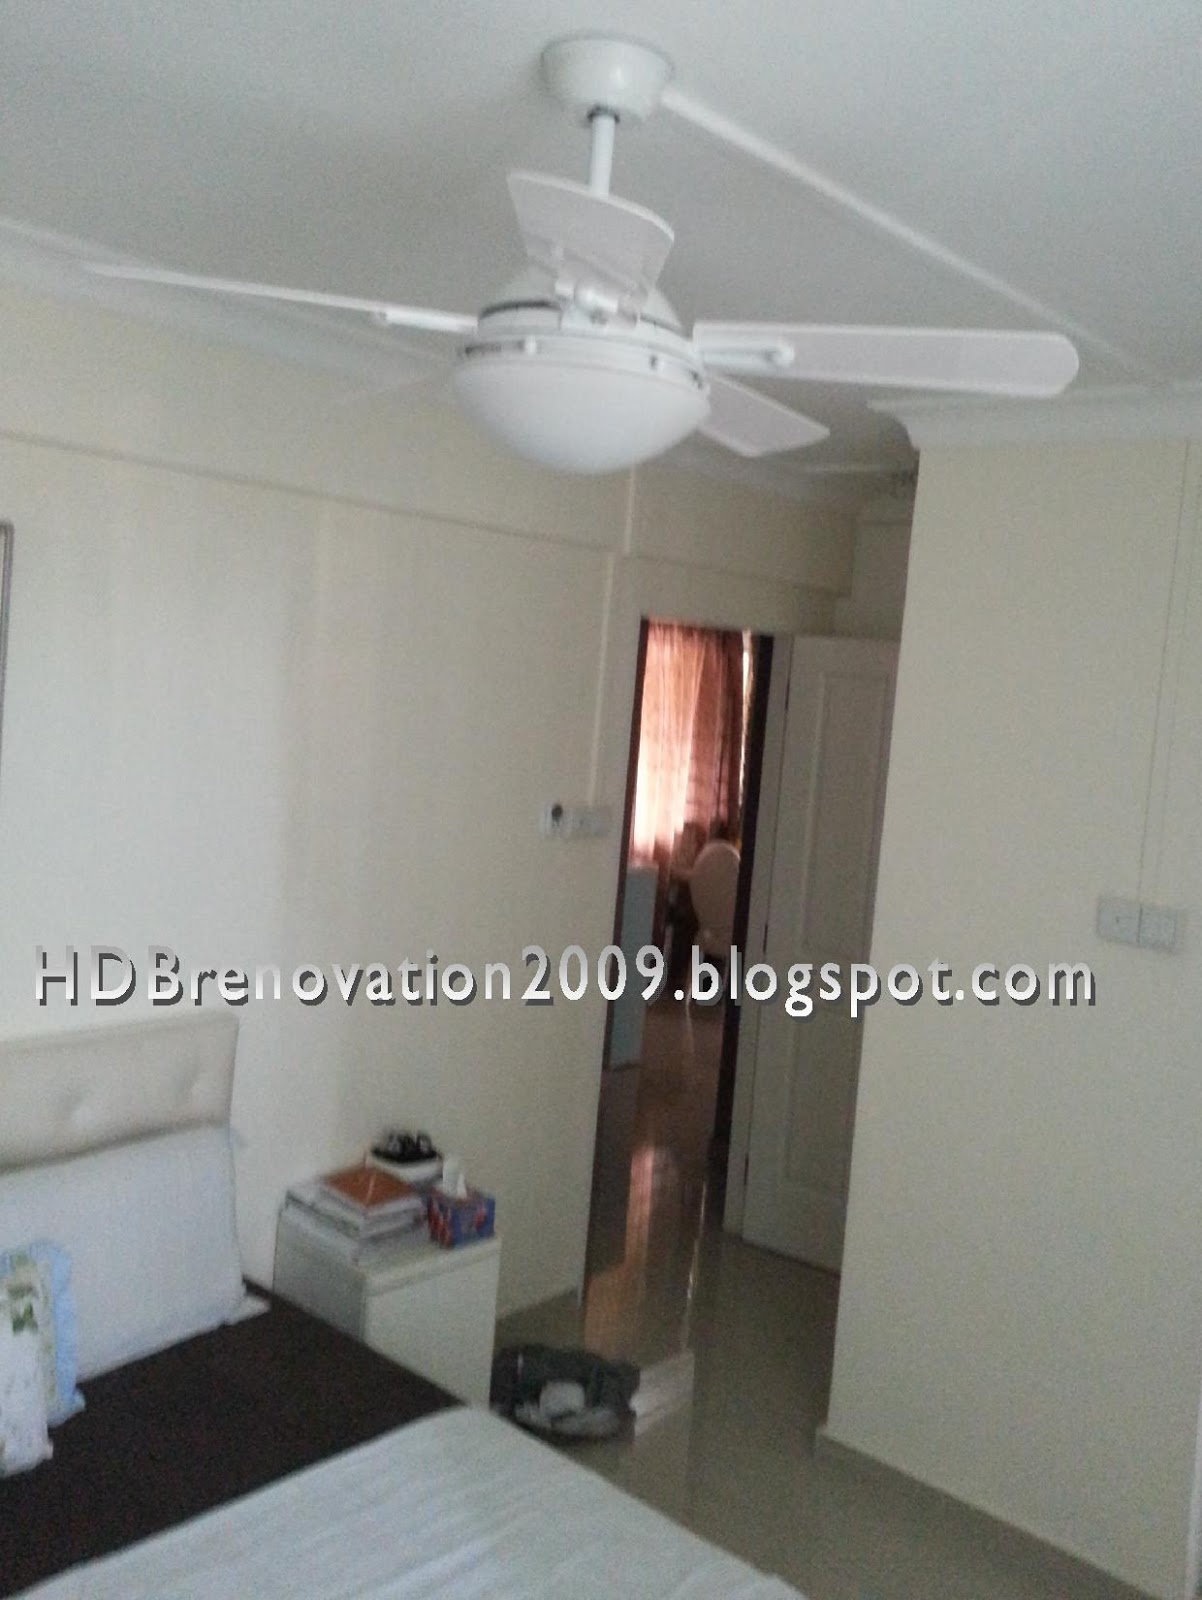 Our HDB Flat Renovation in 2009 Ceiling Fan parison Chart